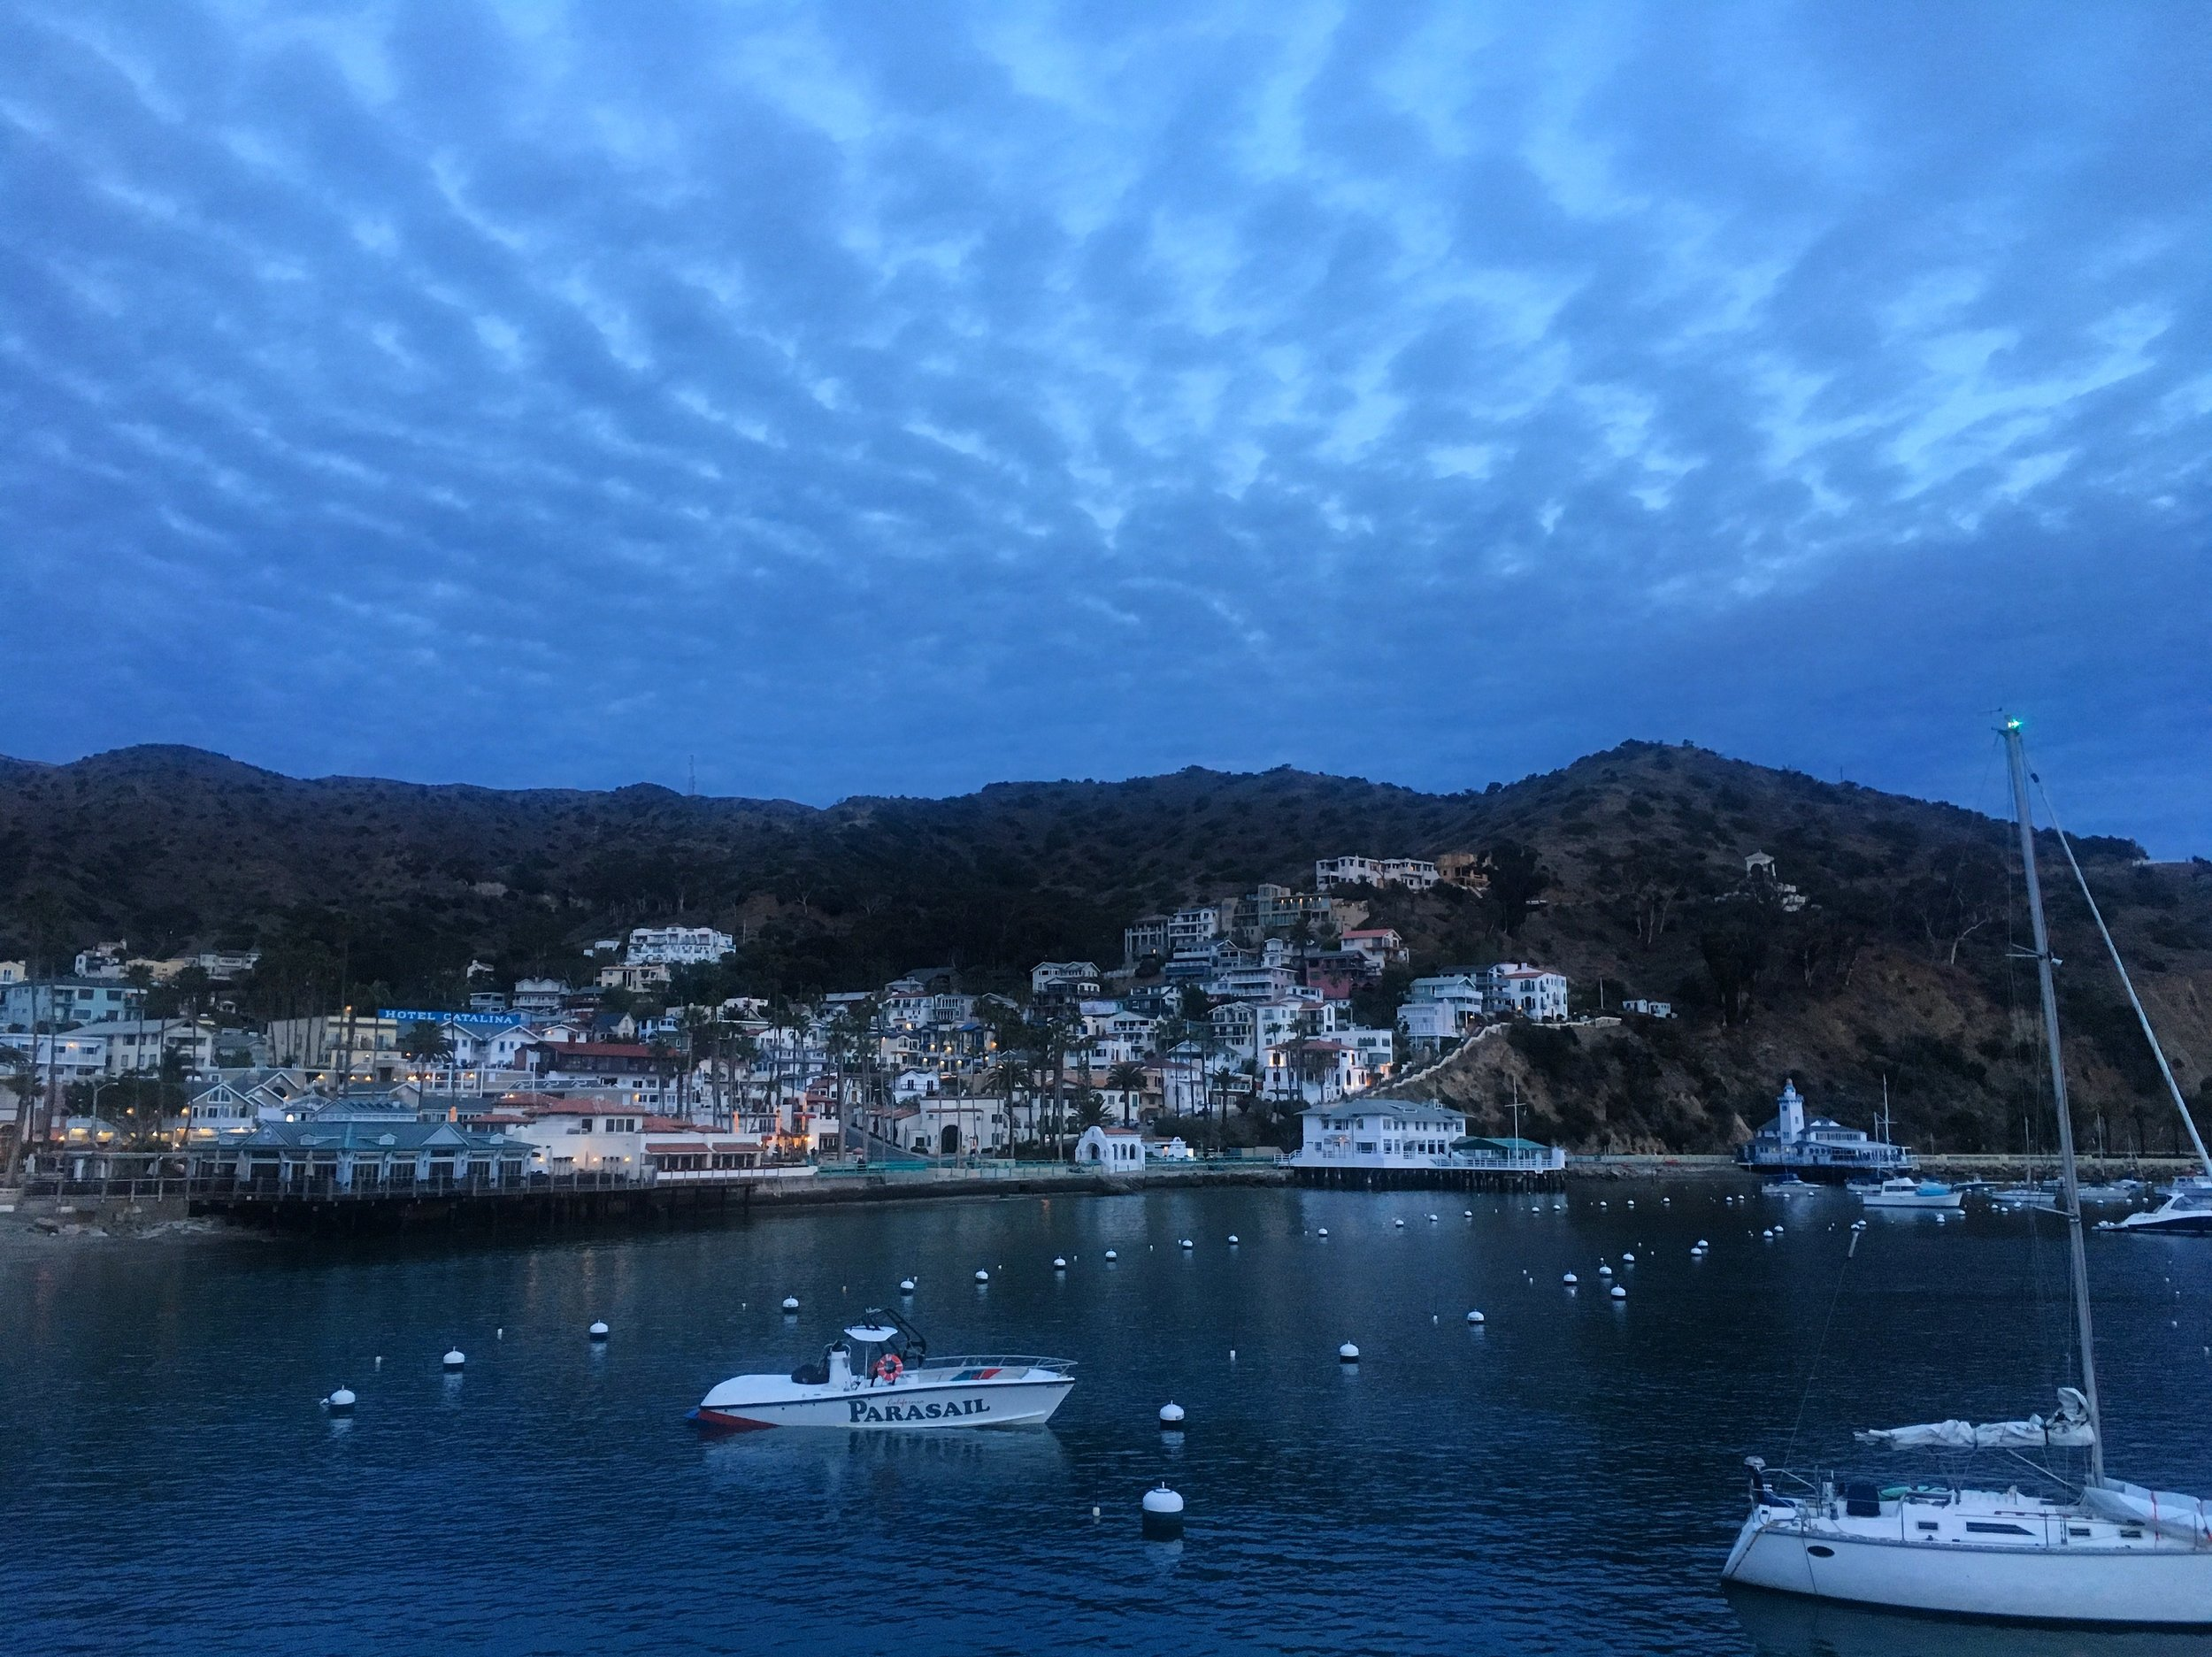 Sunrise on Catalina